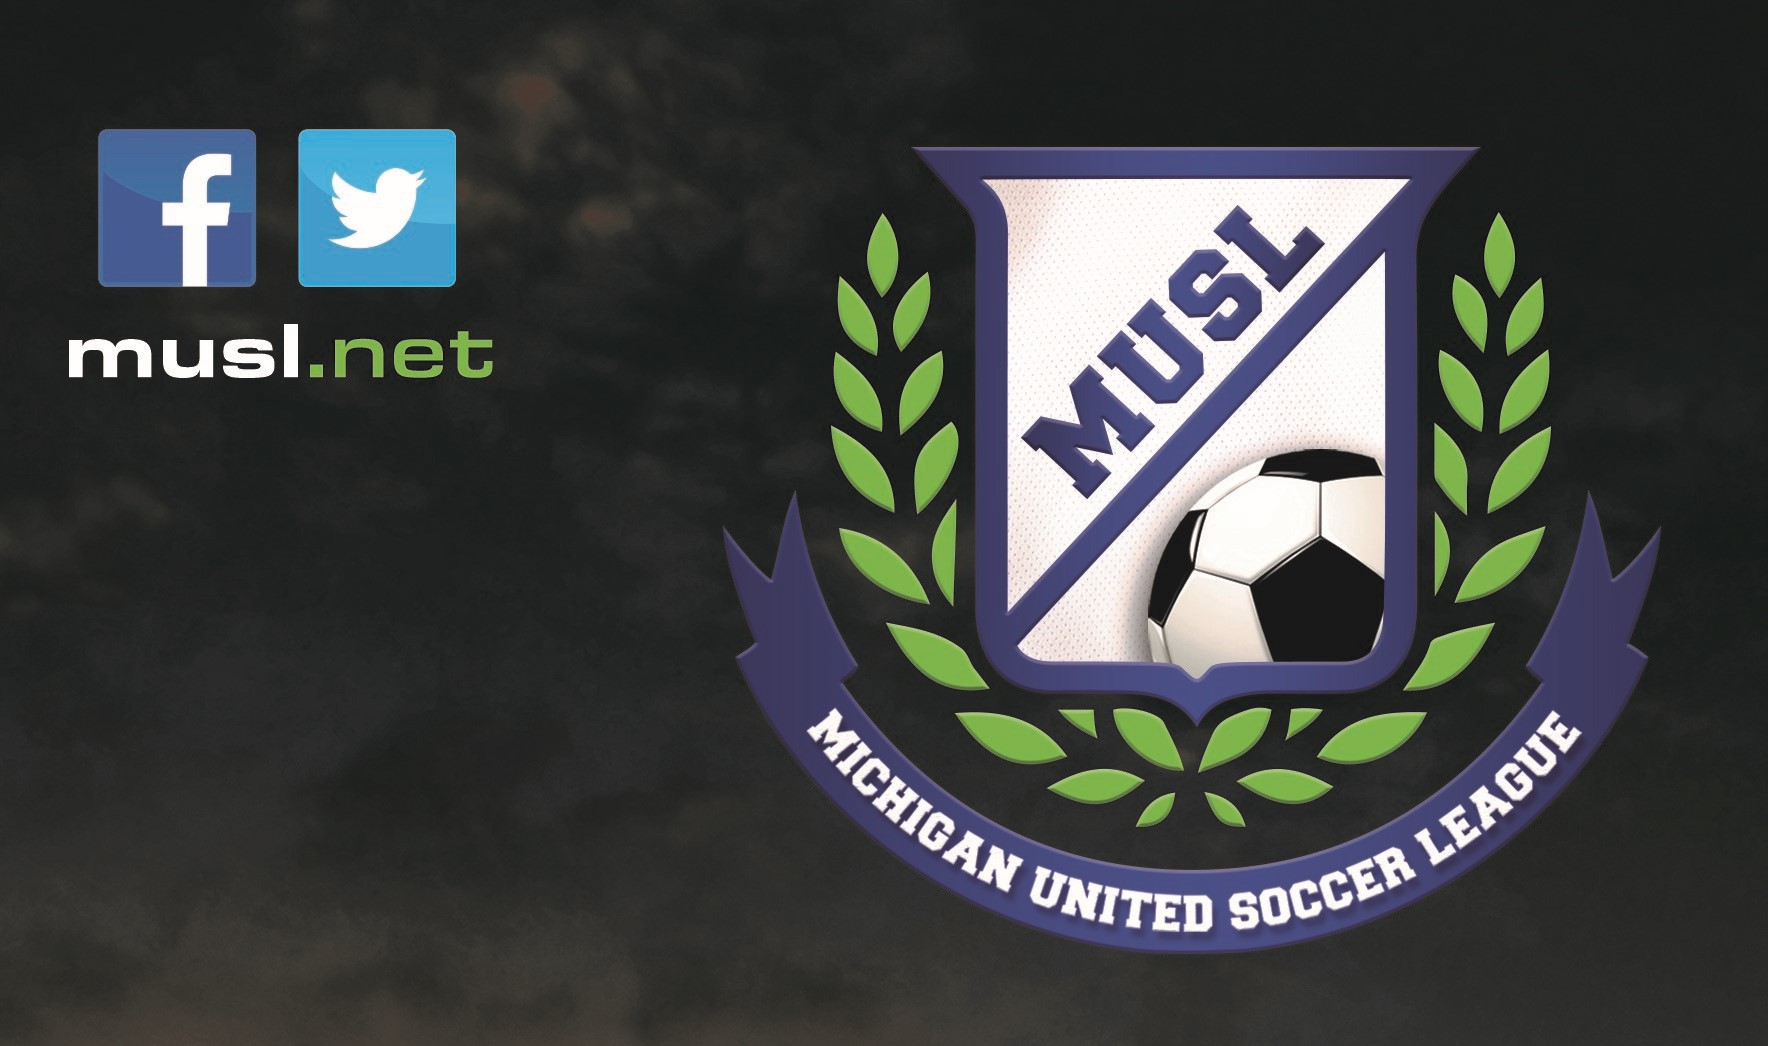 What is the Michigan United Soccer League?